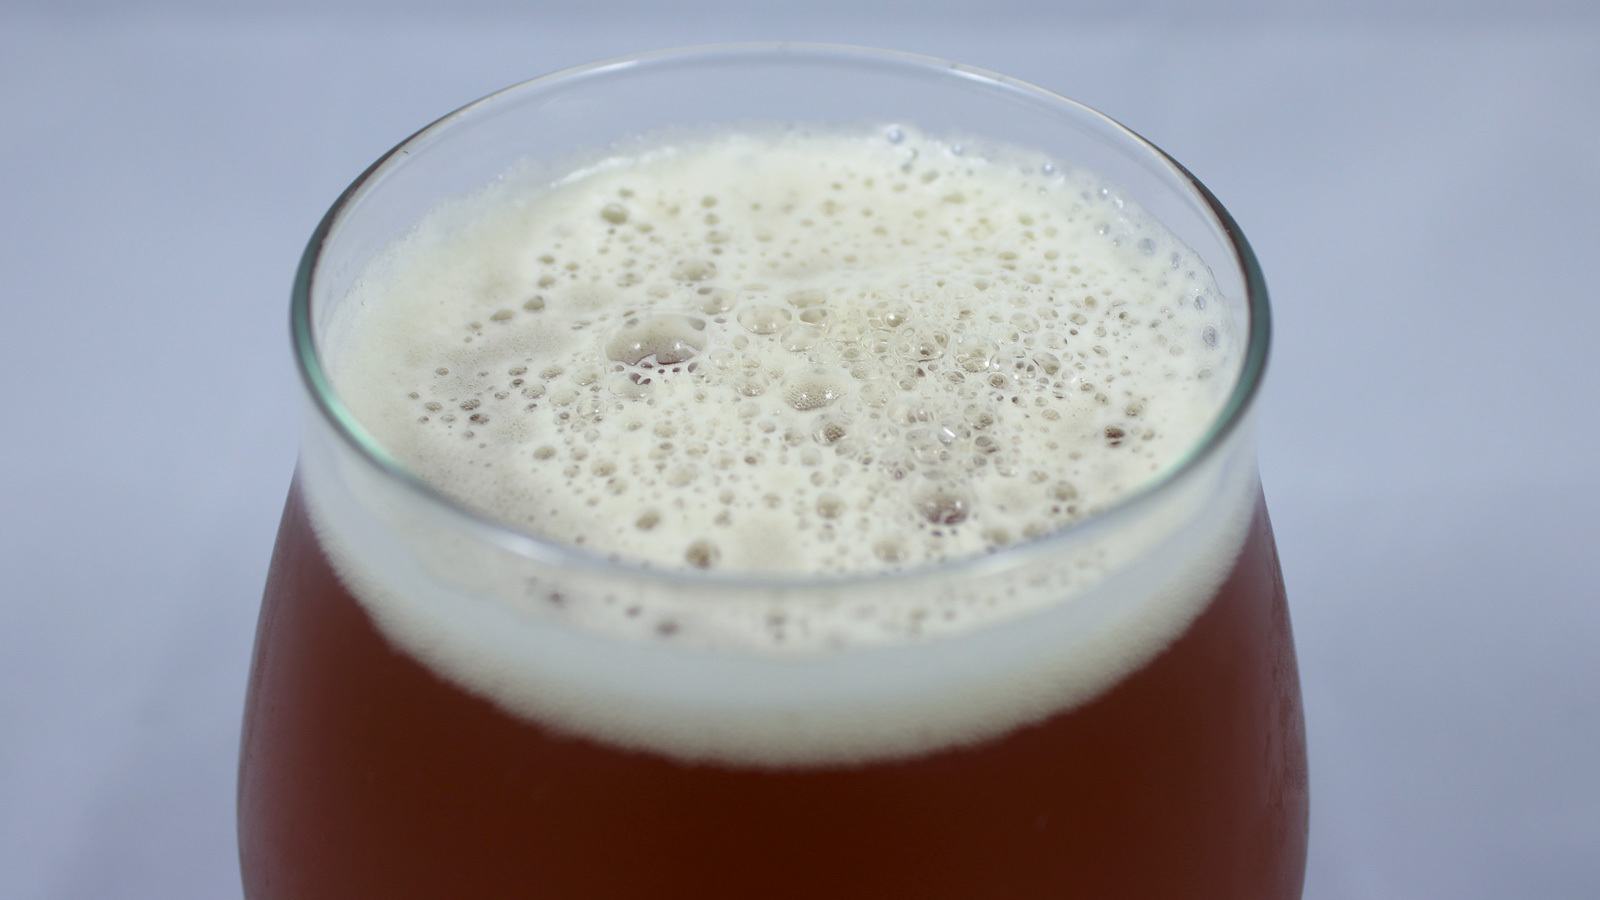 Close-up of the foam on top of a beer